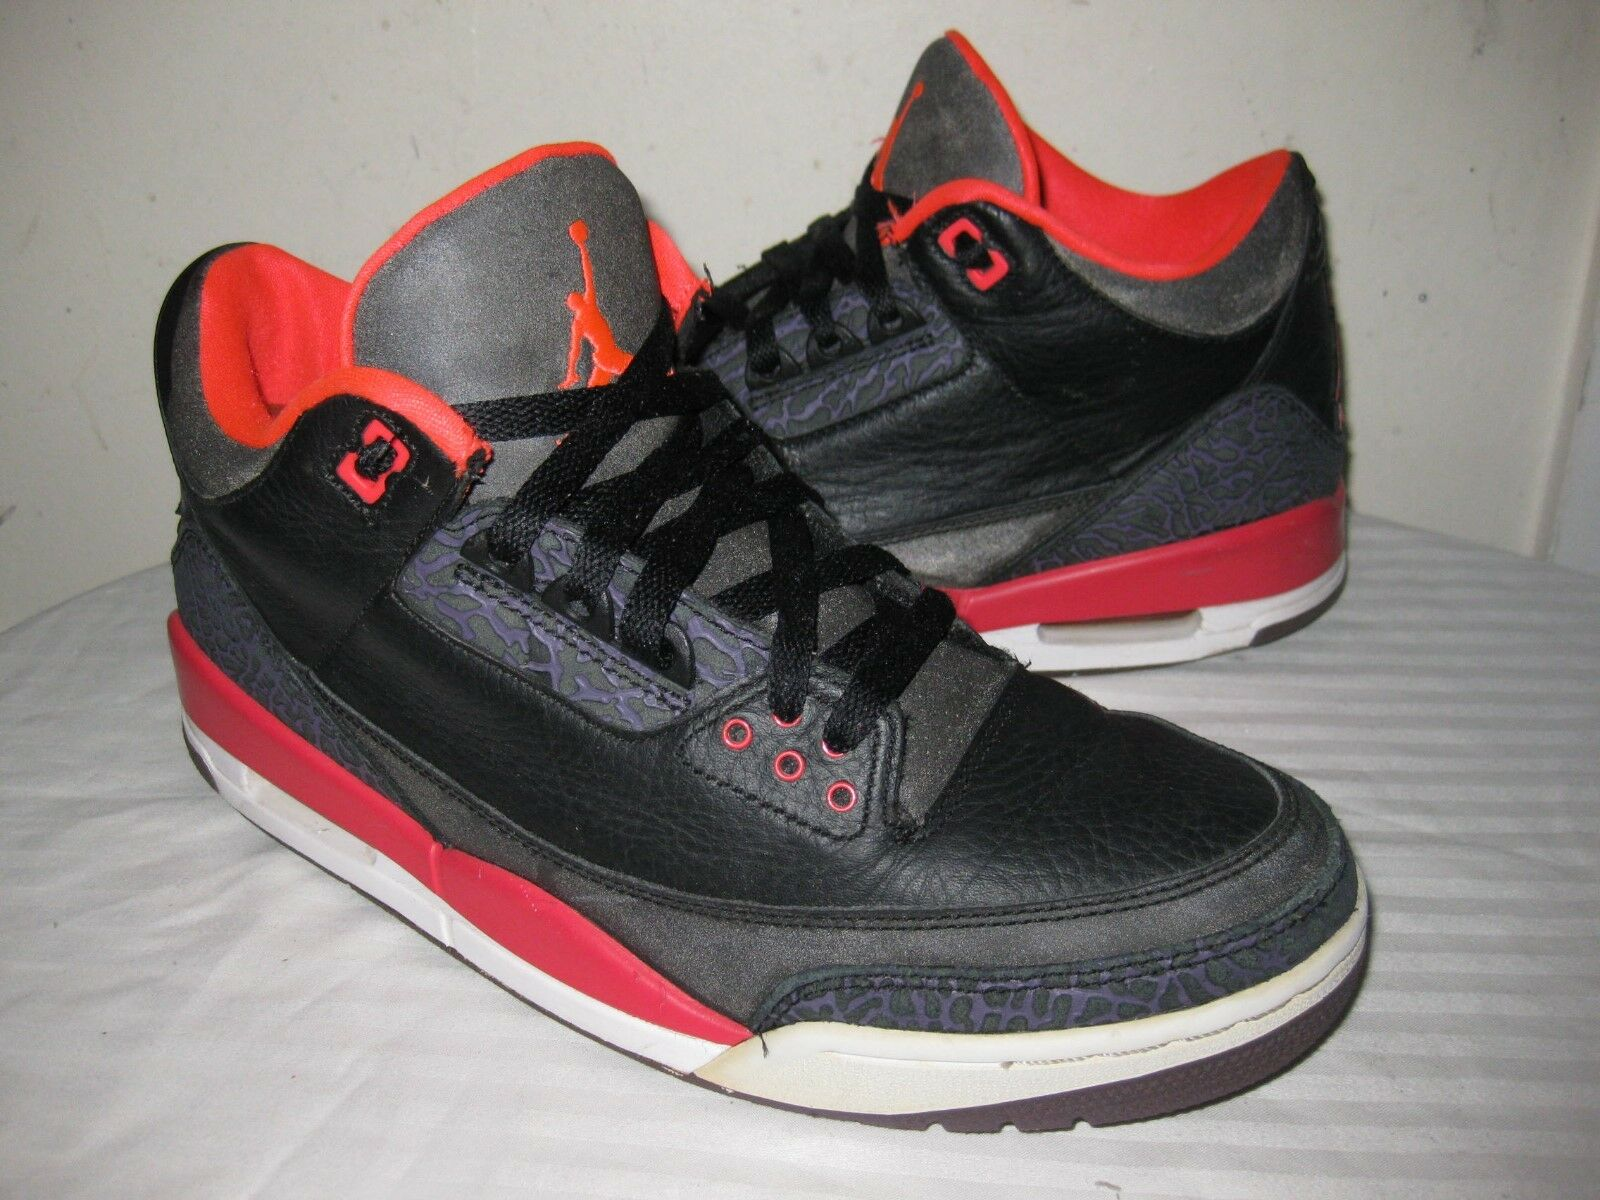 Nike Air Jordan 3 III Retro Crimson 136064-005 Mens Shoes Size 43 / 9.5